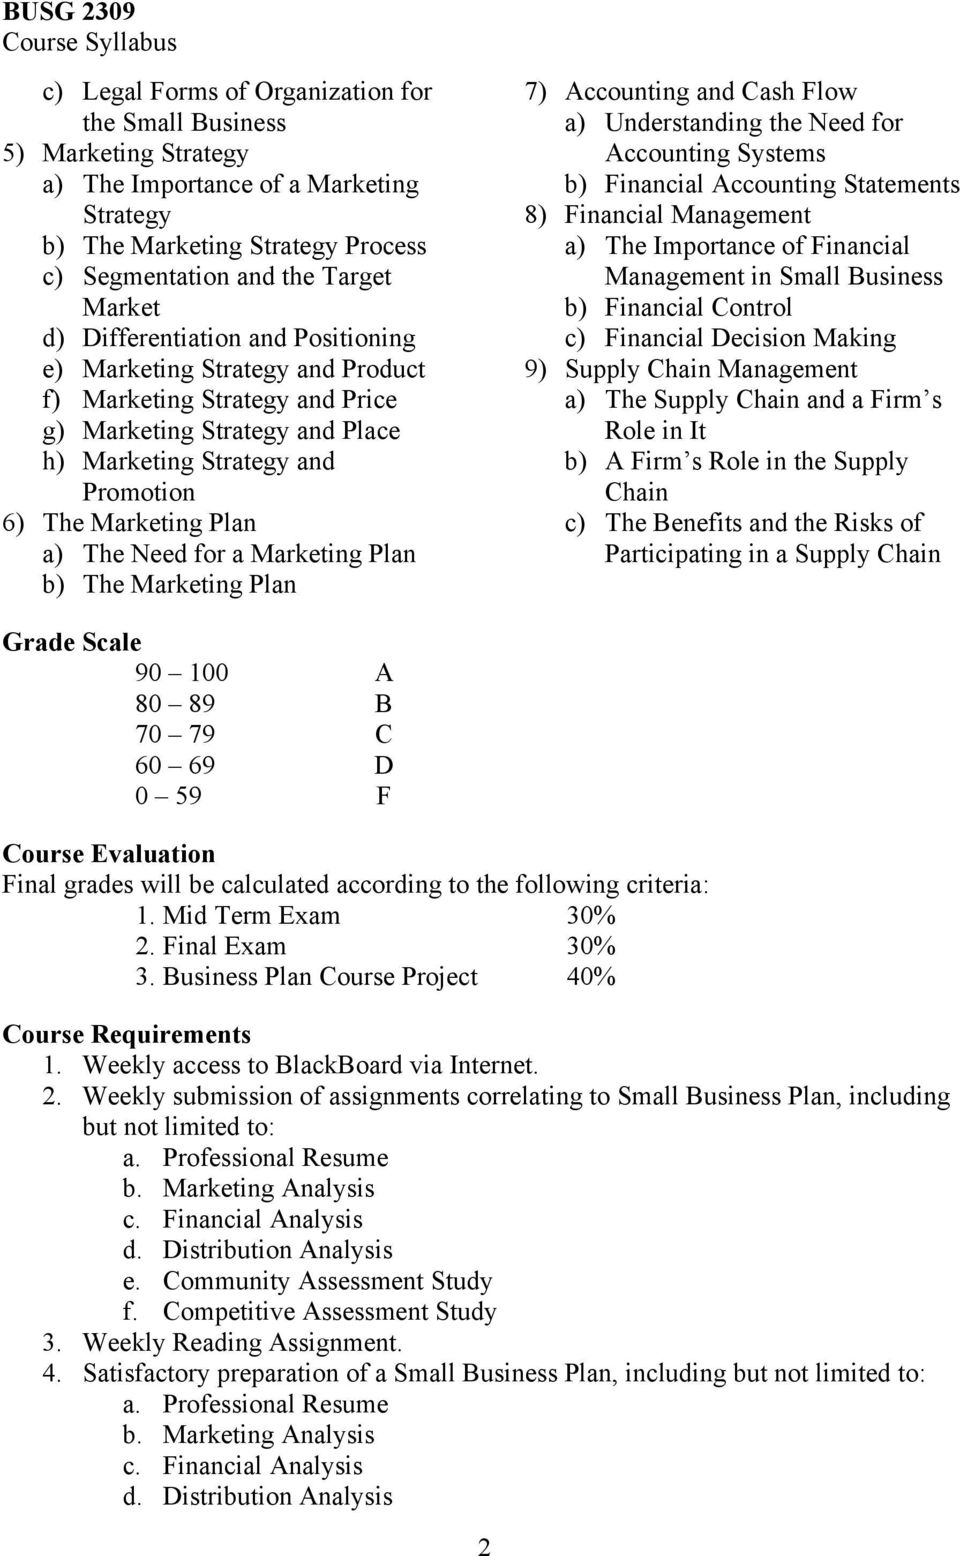 Required Textbook And Materials Title Small Business Management In